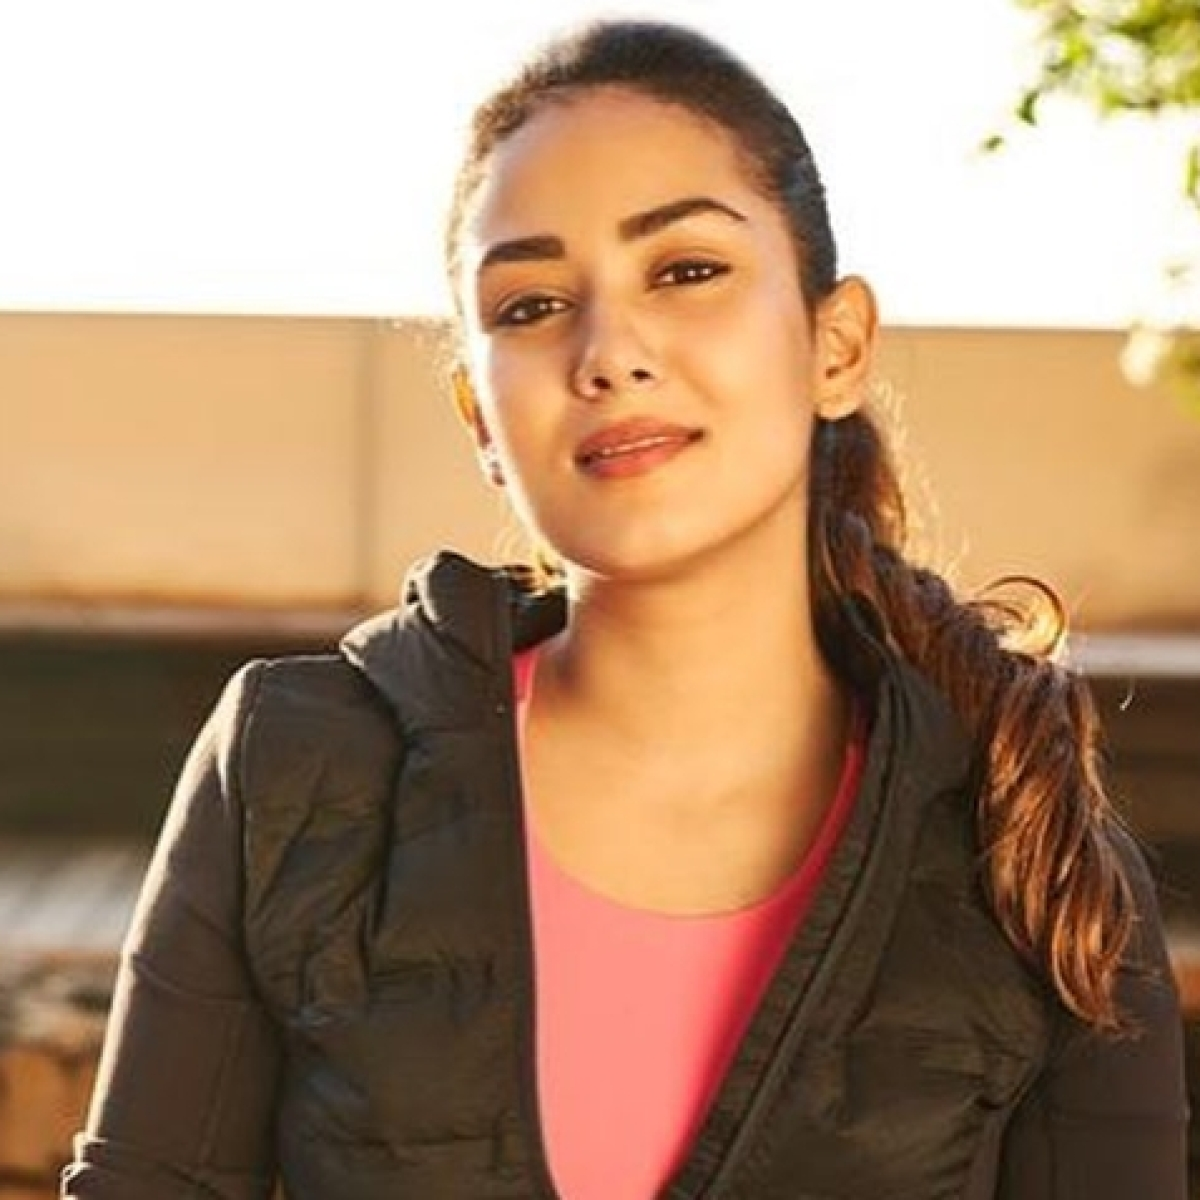 After Shahid Kapoor's gym controversy, Mira Kapoor shares her 'quarantine workout'